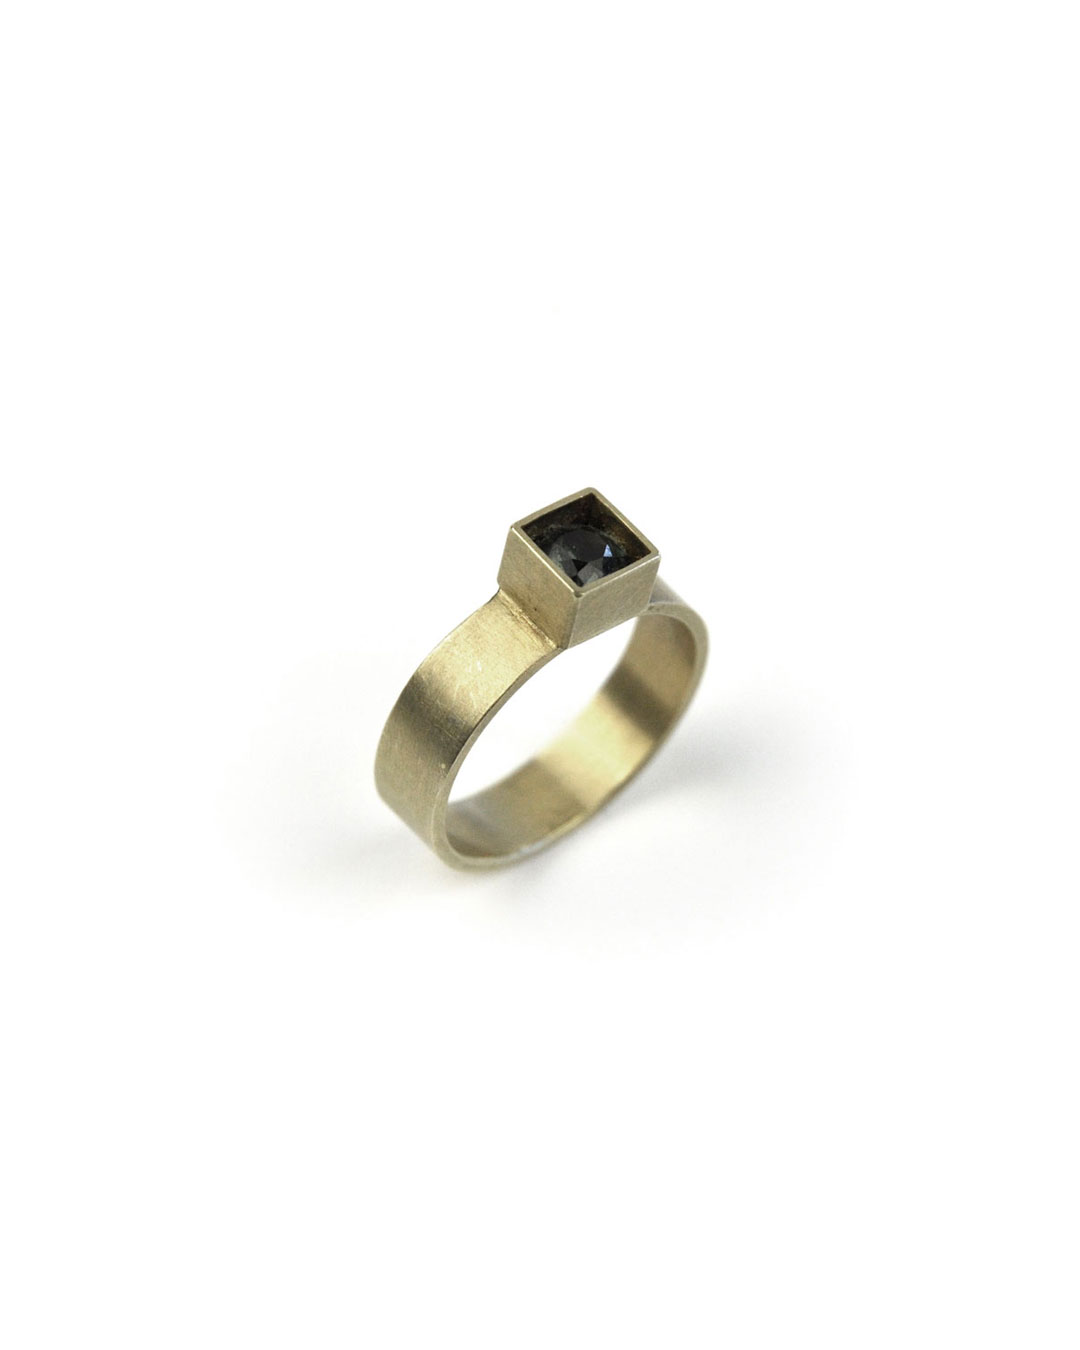 Herman Hermsen, untitled, 2005, ring; 14ct gold, synthetic stone, 24 x 20 x 5 mm, €550